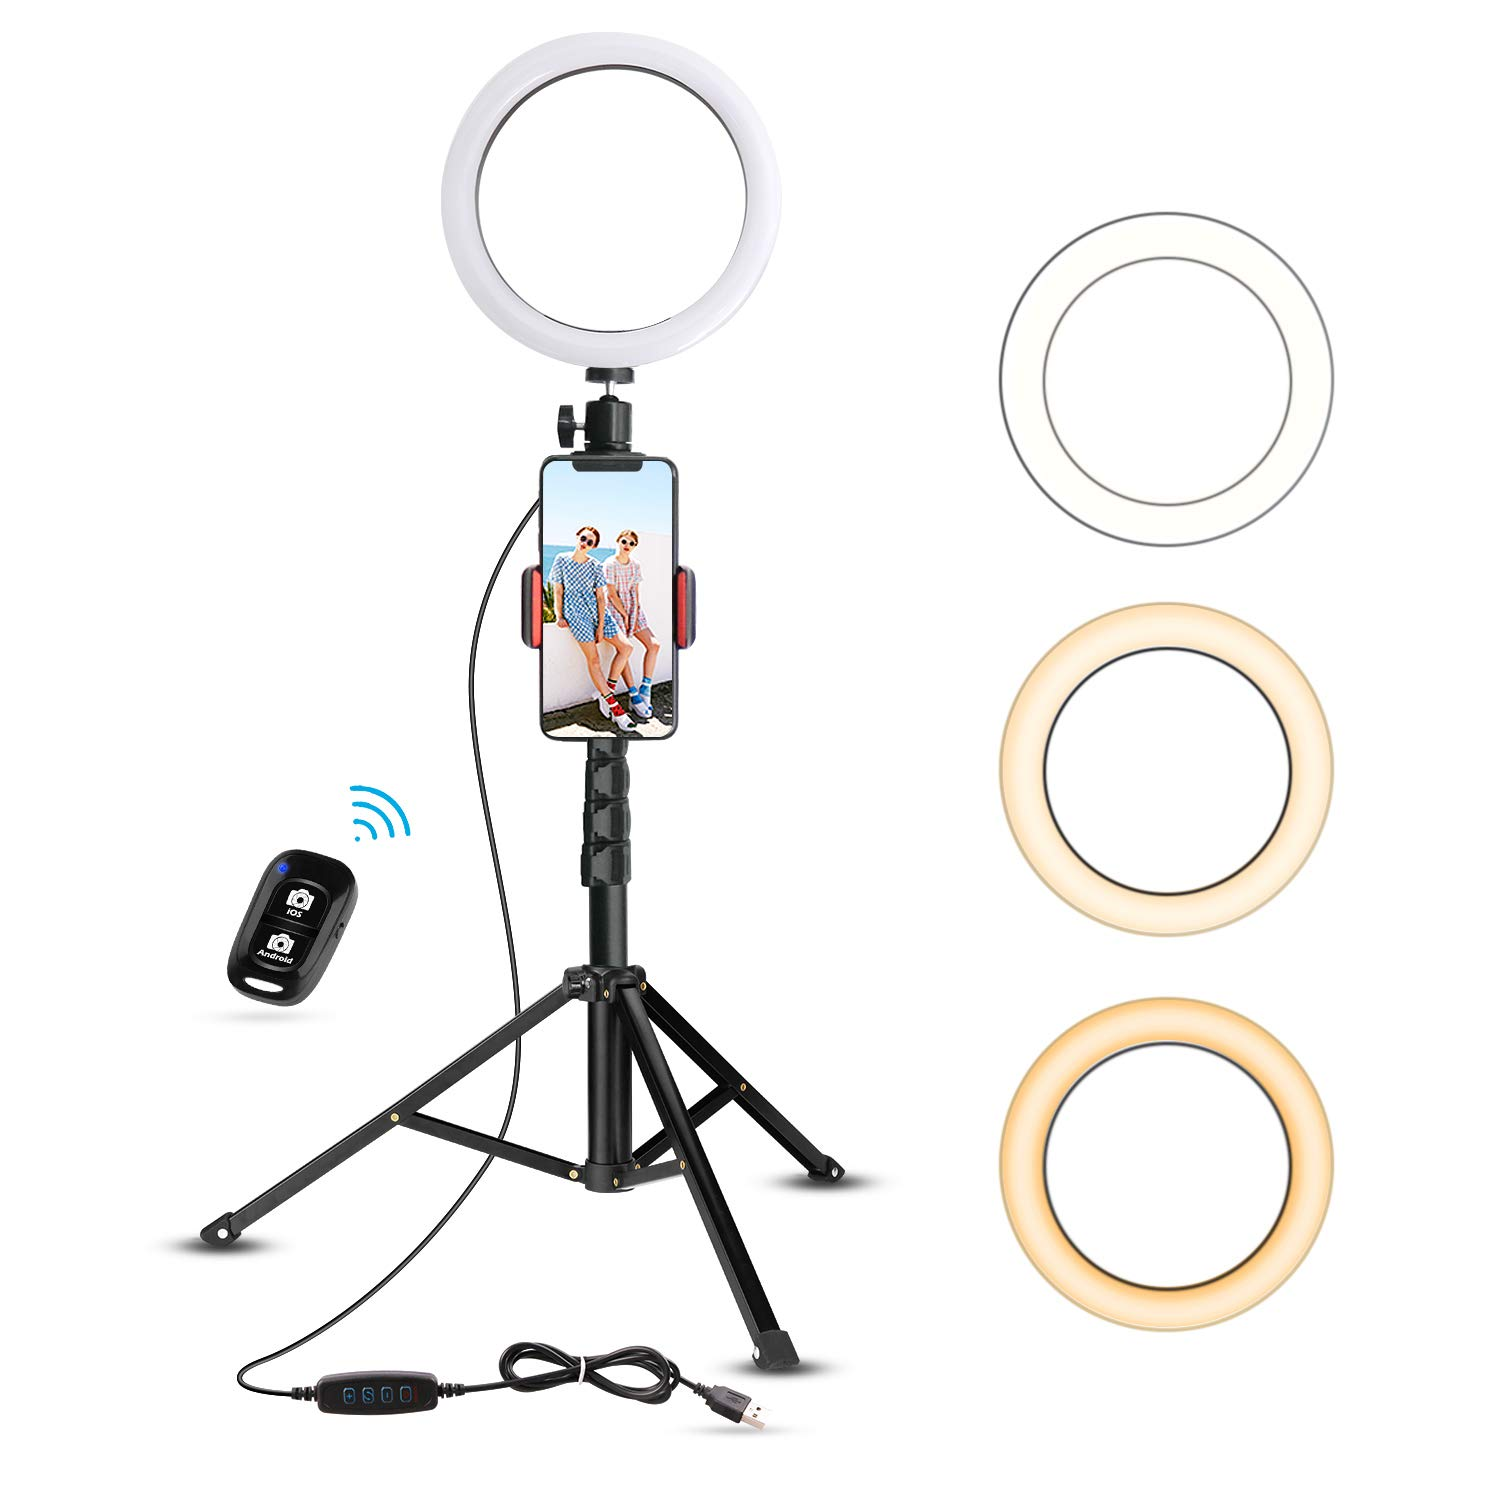 8'' Selfie Ring Light with Tripod Stand & Cell Phone Holder for Live Stream/Makeup, UBeesize Mini Led Camera Ringlight for YouTube Video/Photography Compatible with iPhone Xs Max XR Android (Upgraded) by UBeesize